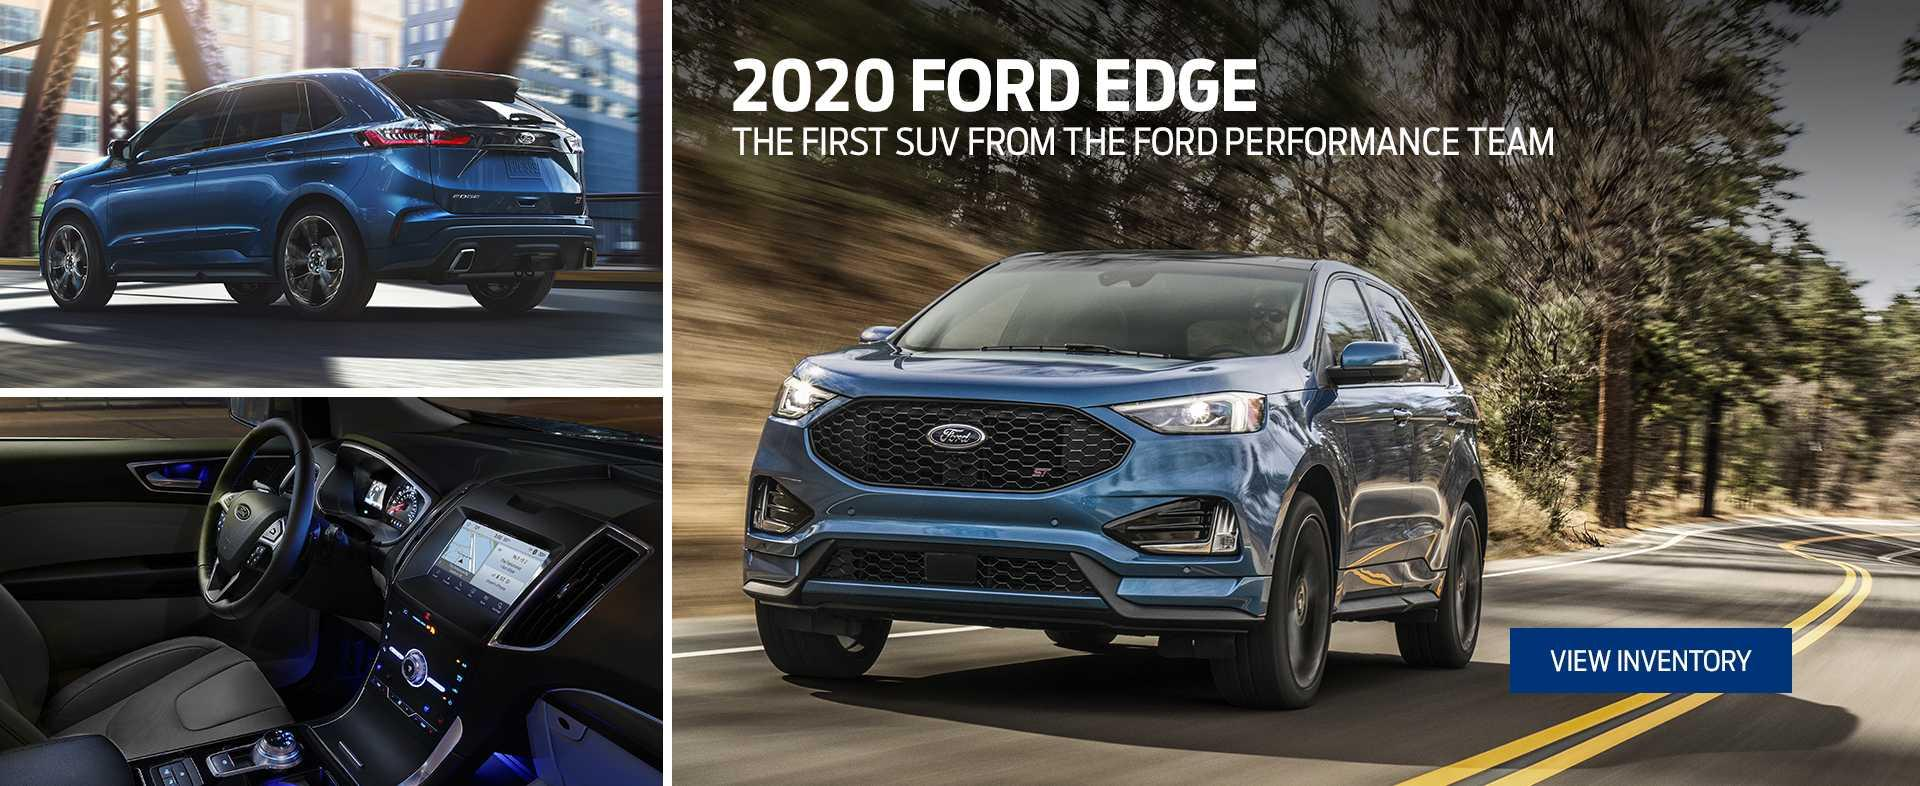 Ford Home 2020 Edge Image